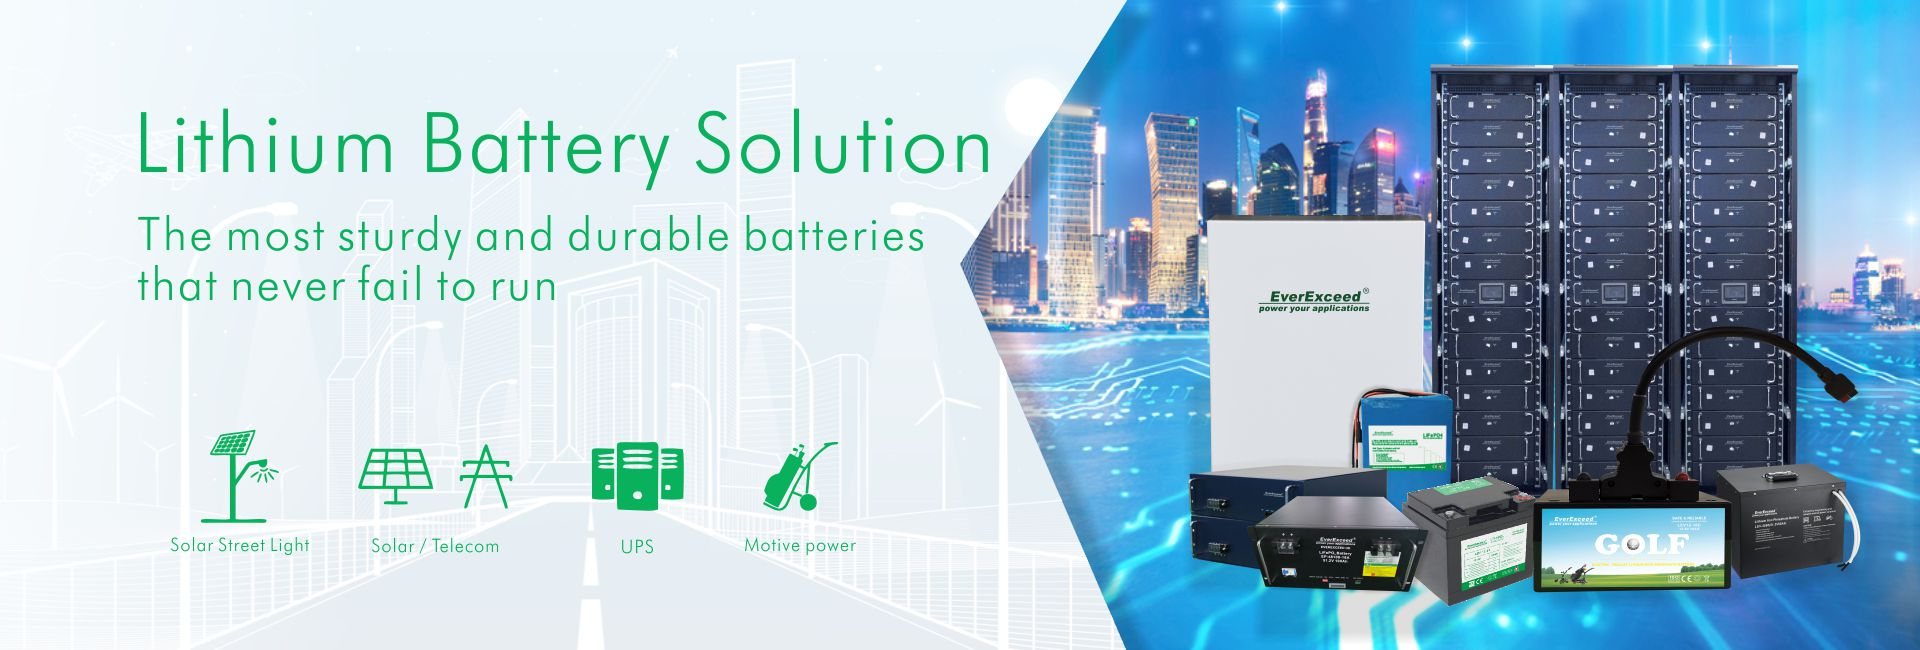 Lithium Battery Solution